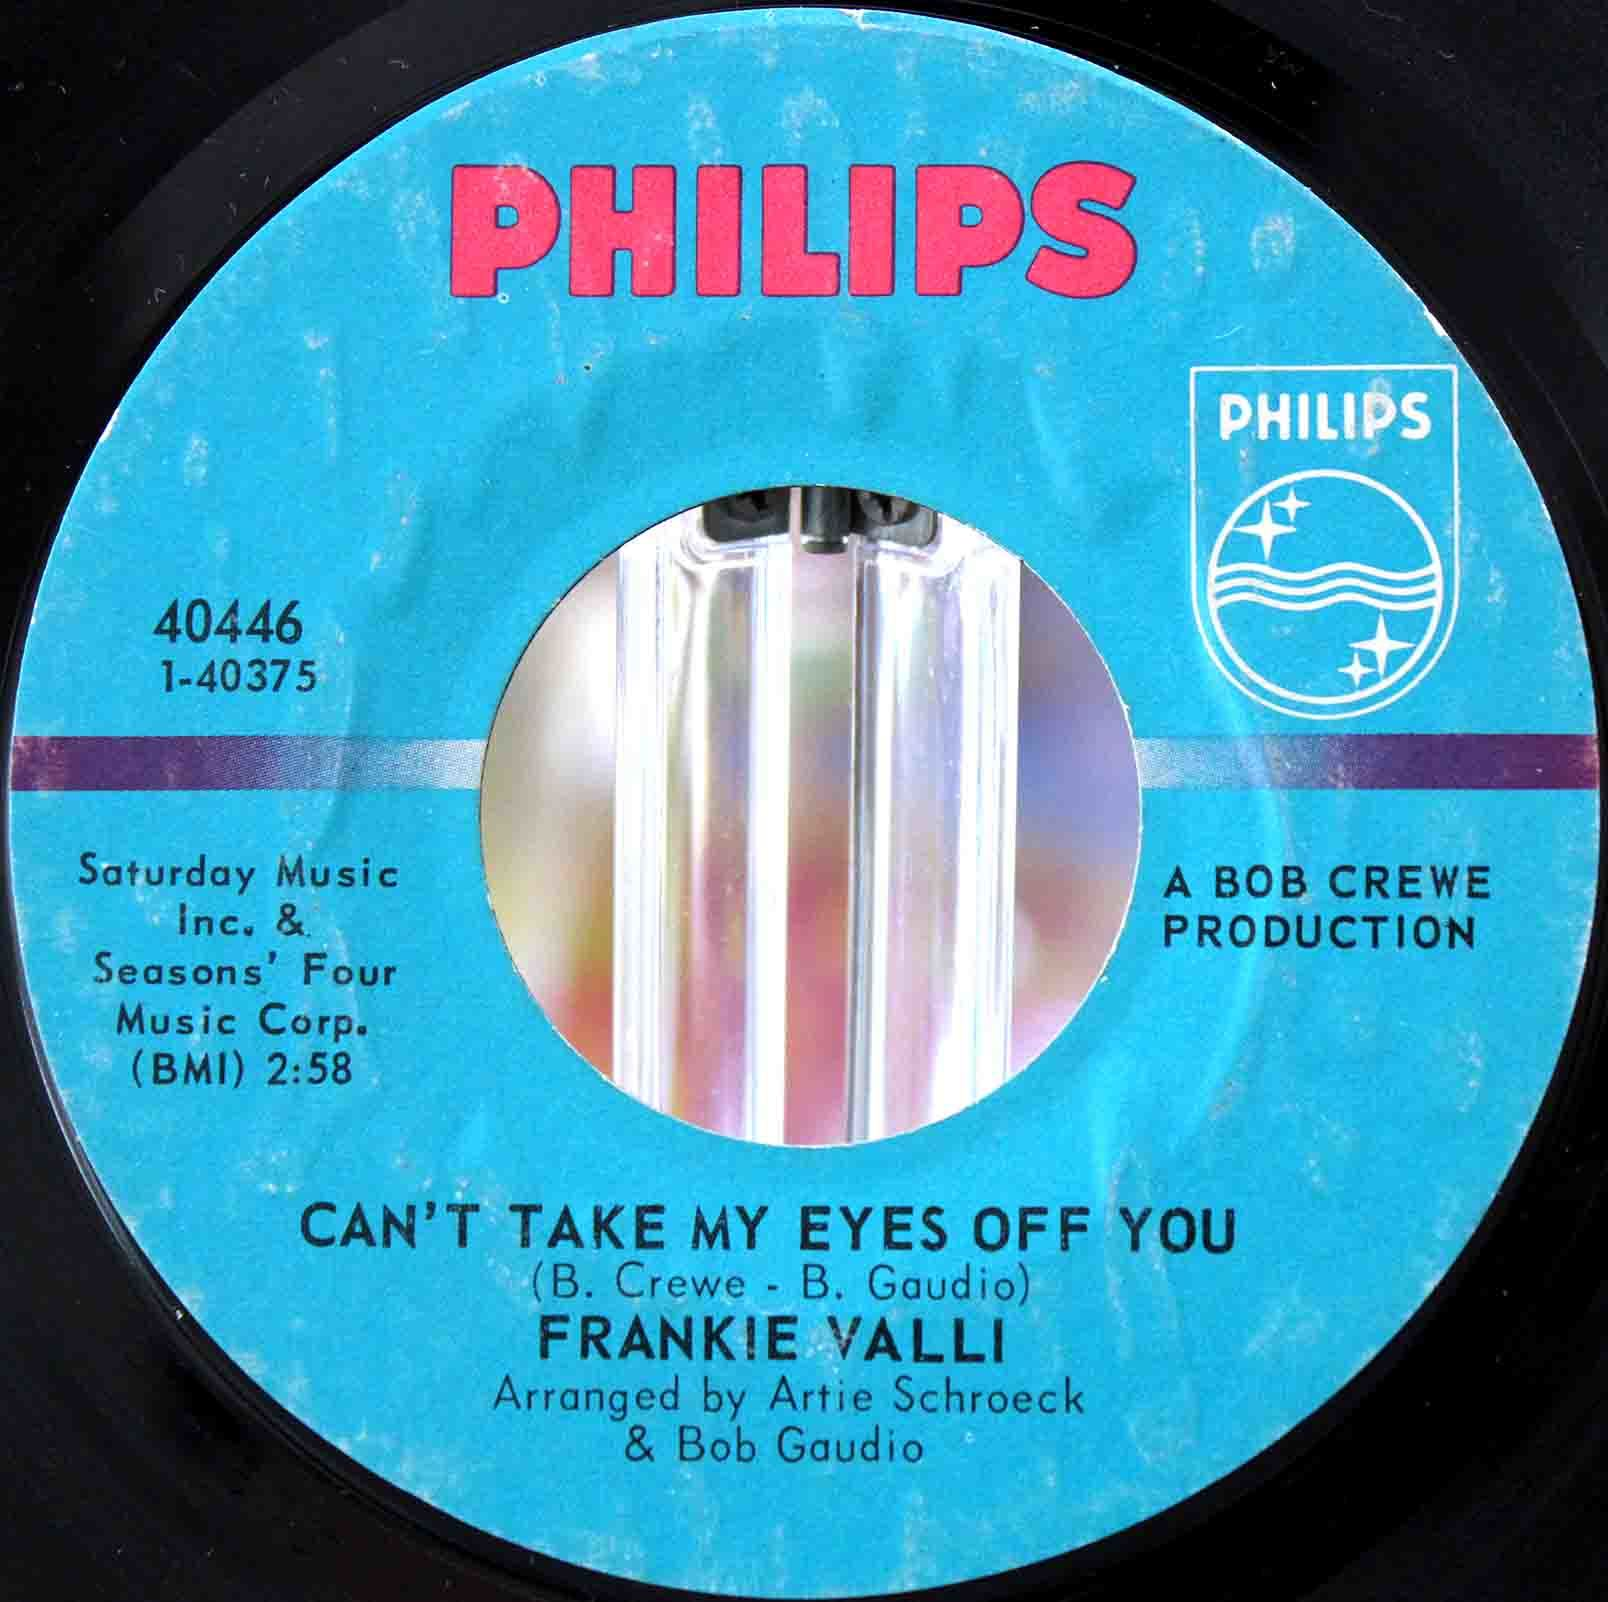 Frankie Valli - Cant take my eyes off you 03